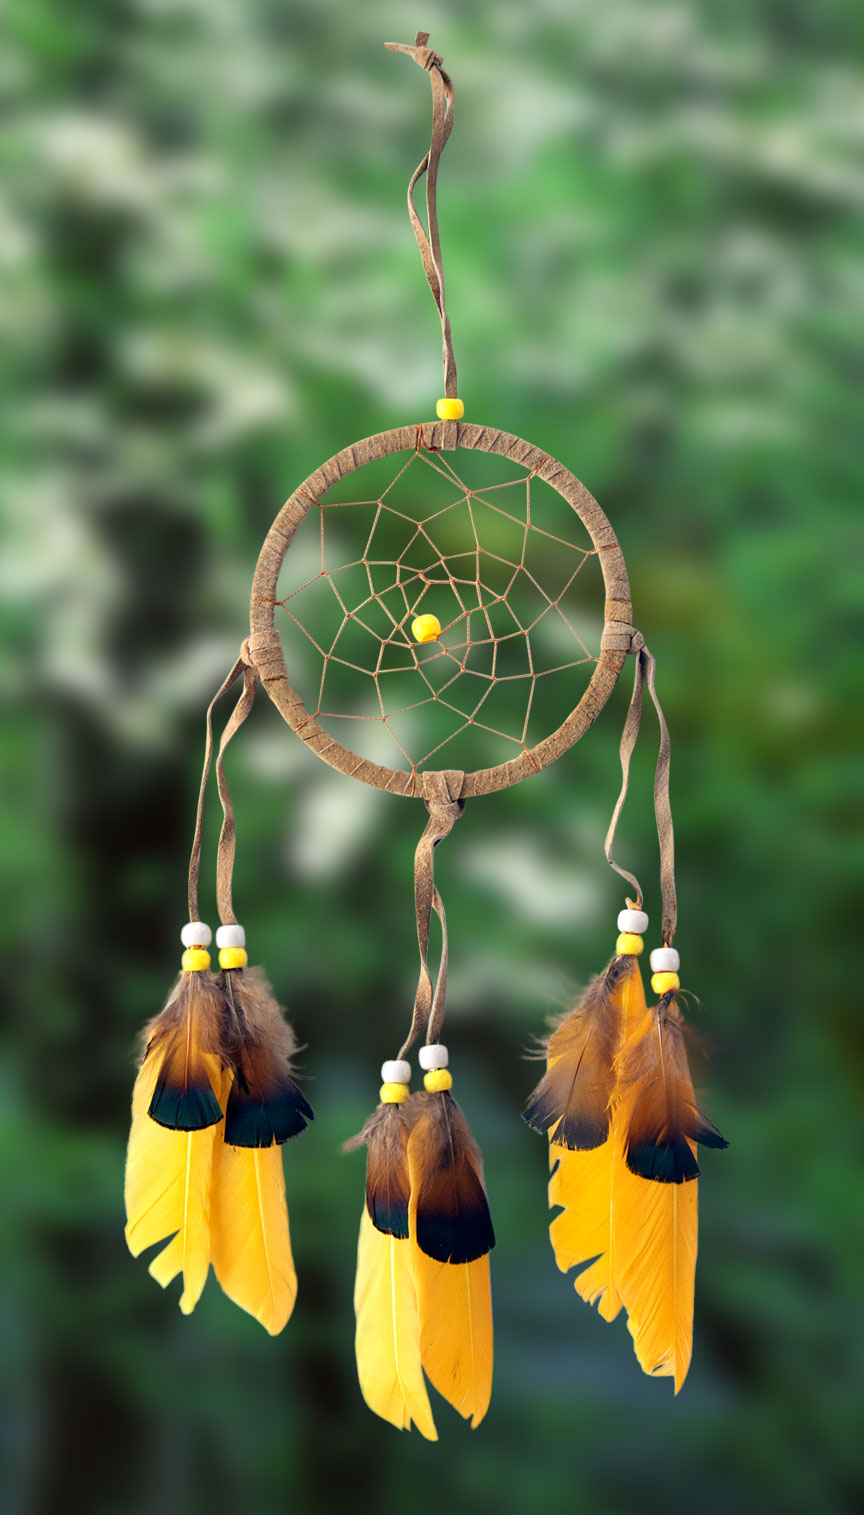 Shows an image of dreamcatcher owg004 on a scenic background